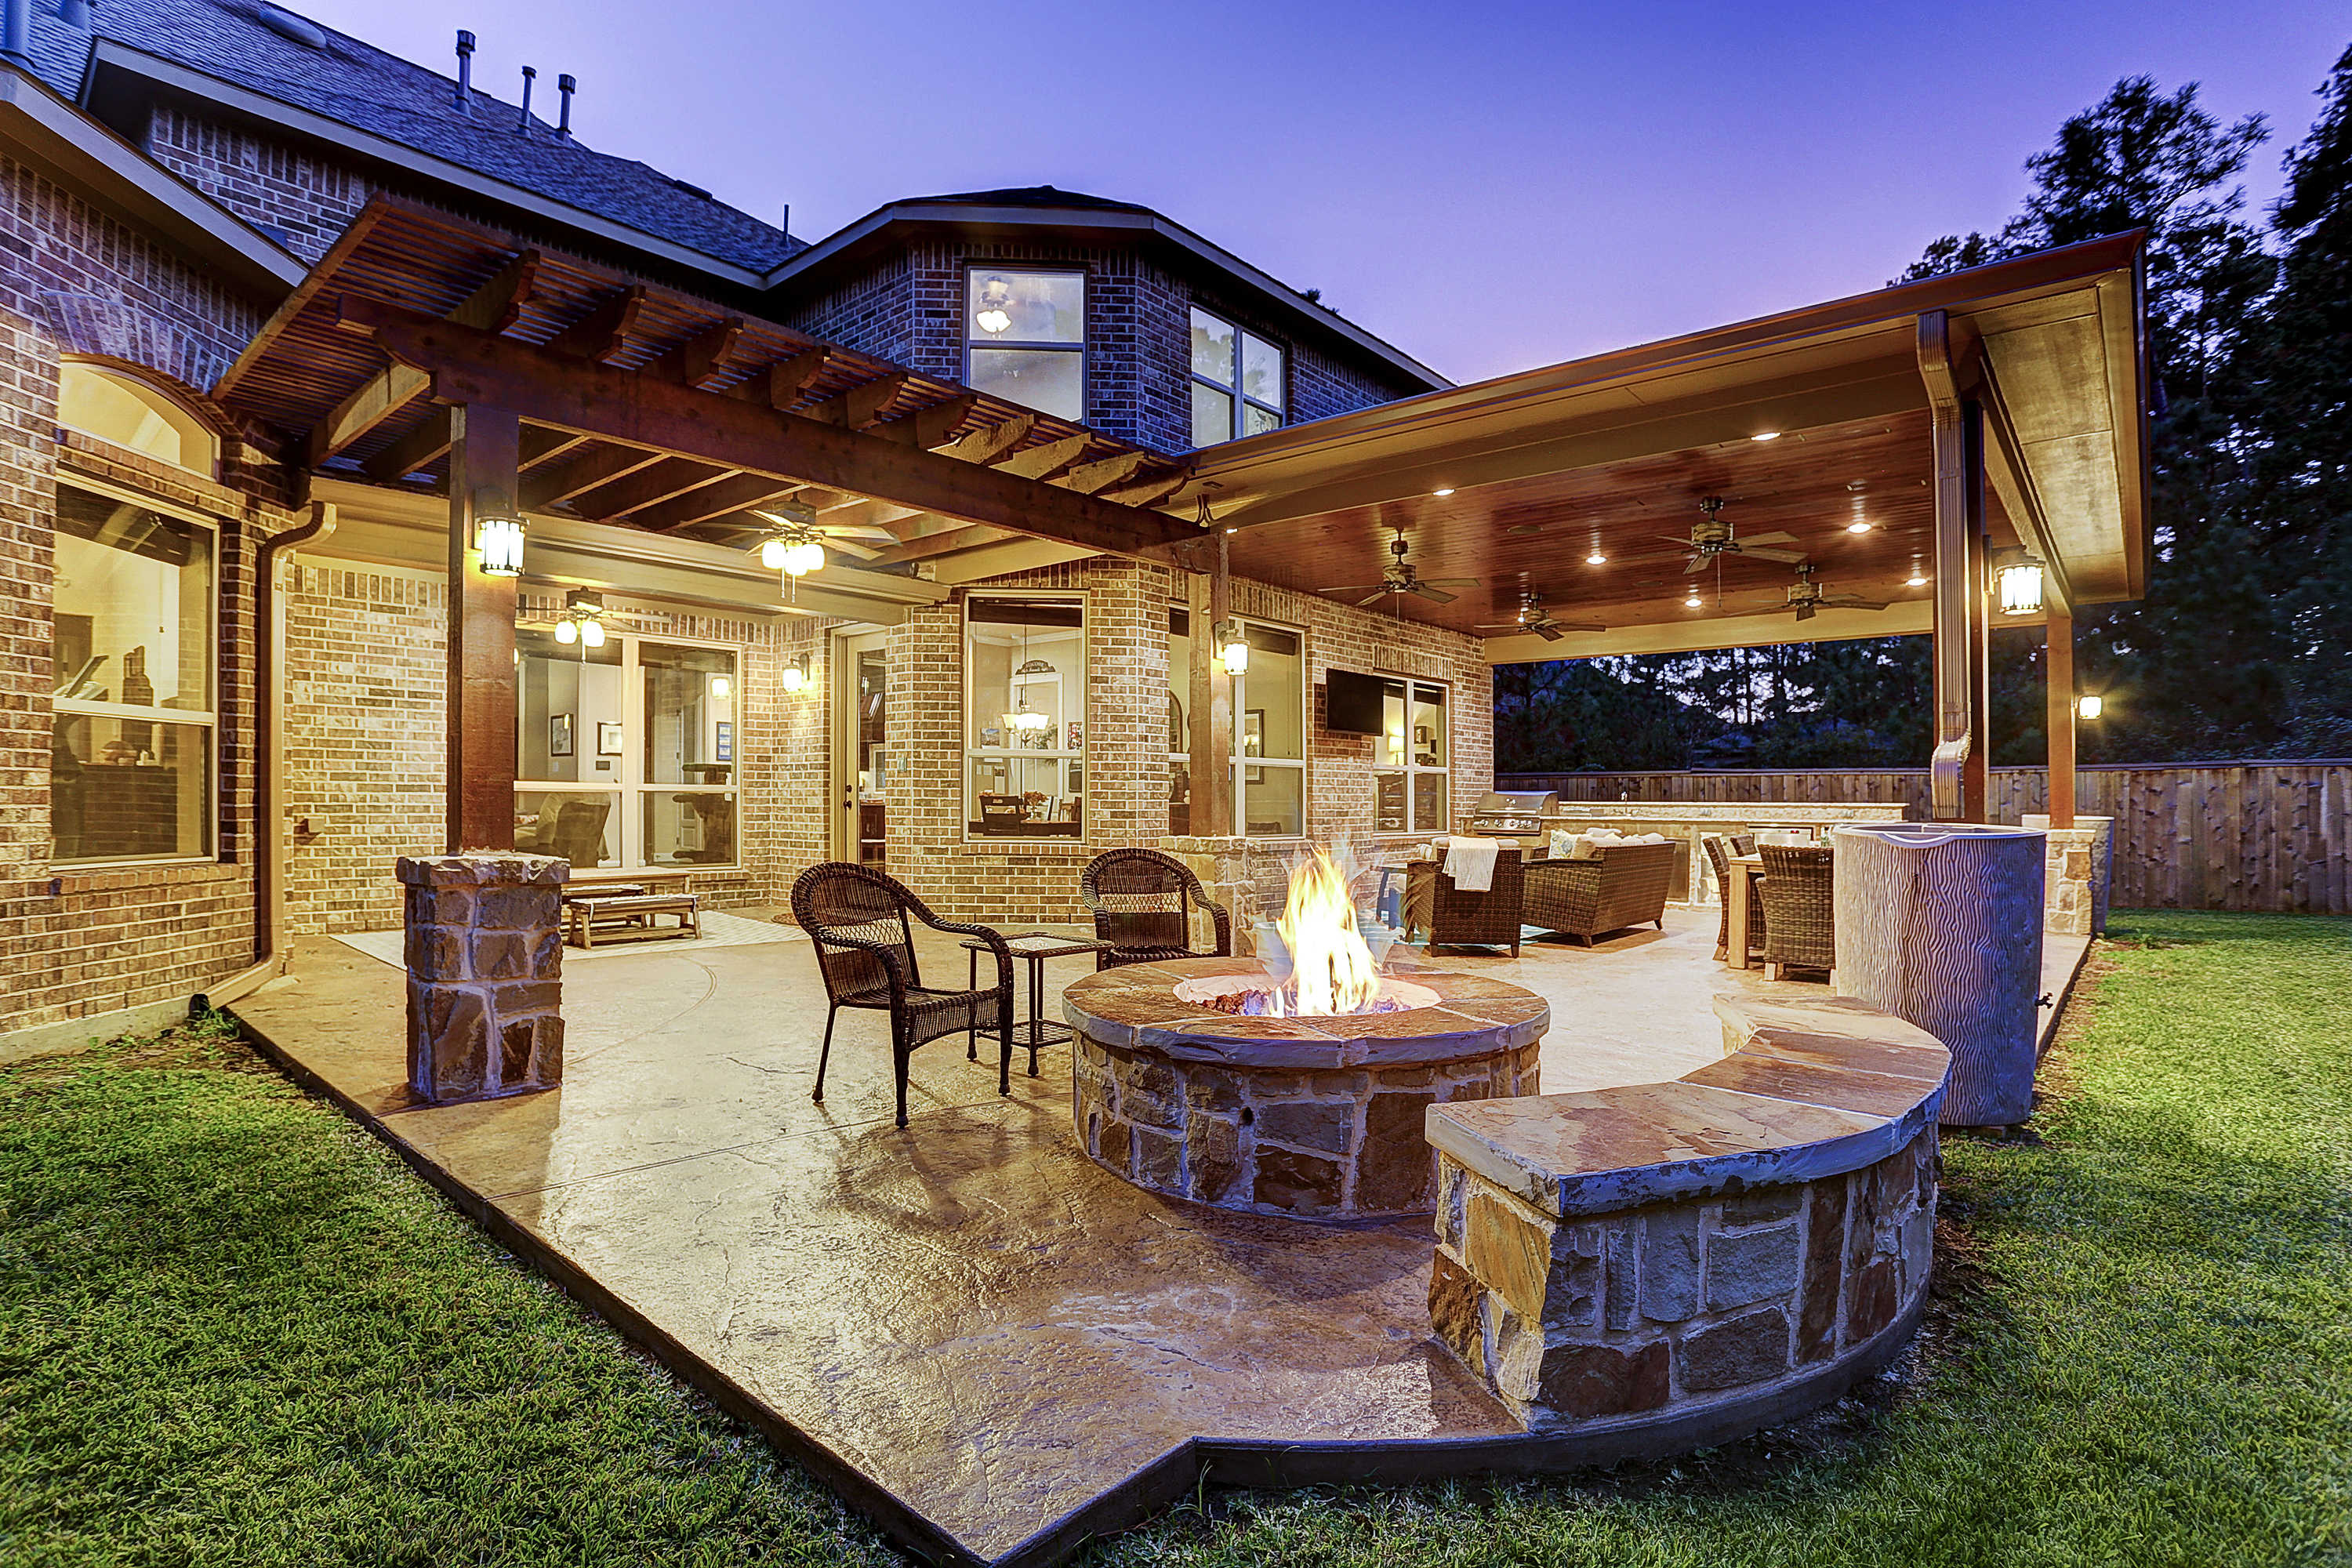 Outdoor Living Space in The Woodlands on Unique Outdoor Living id=55939